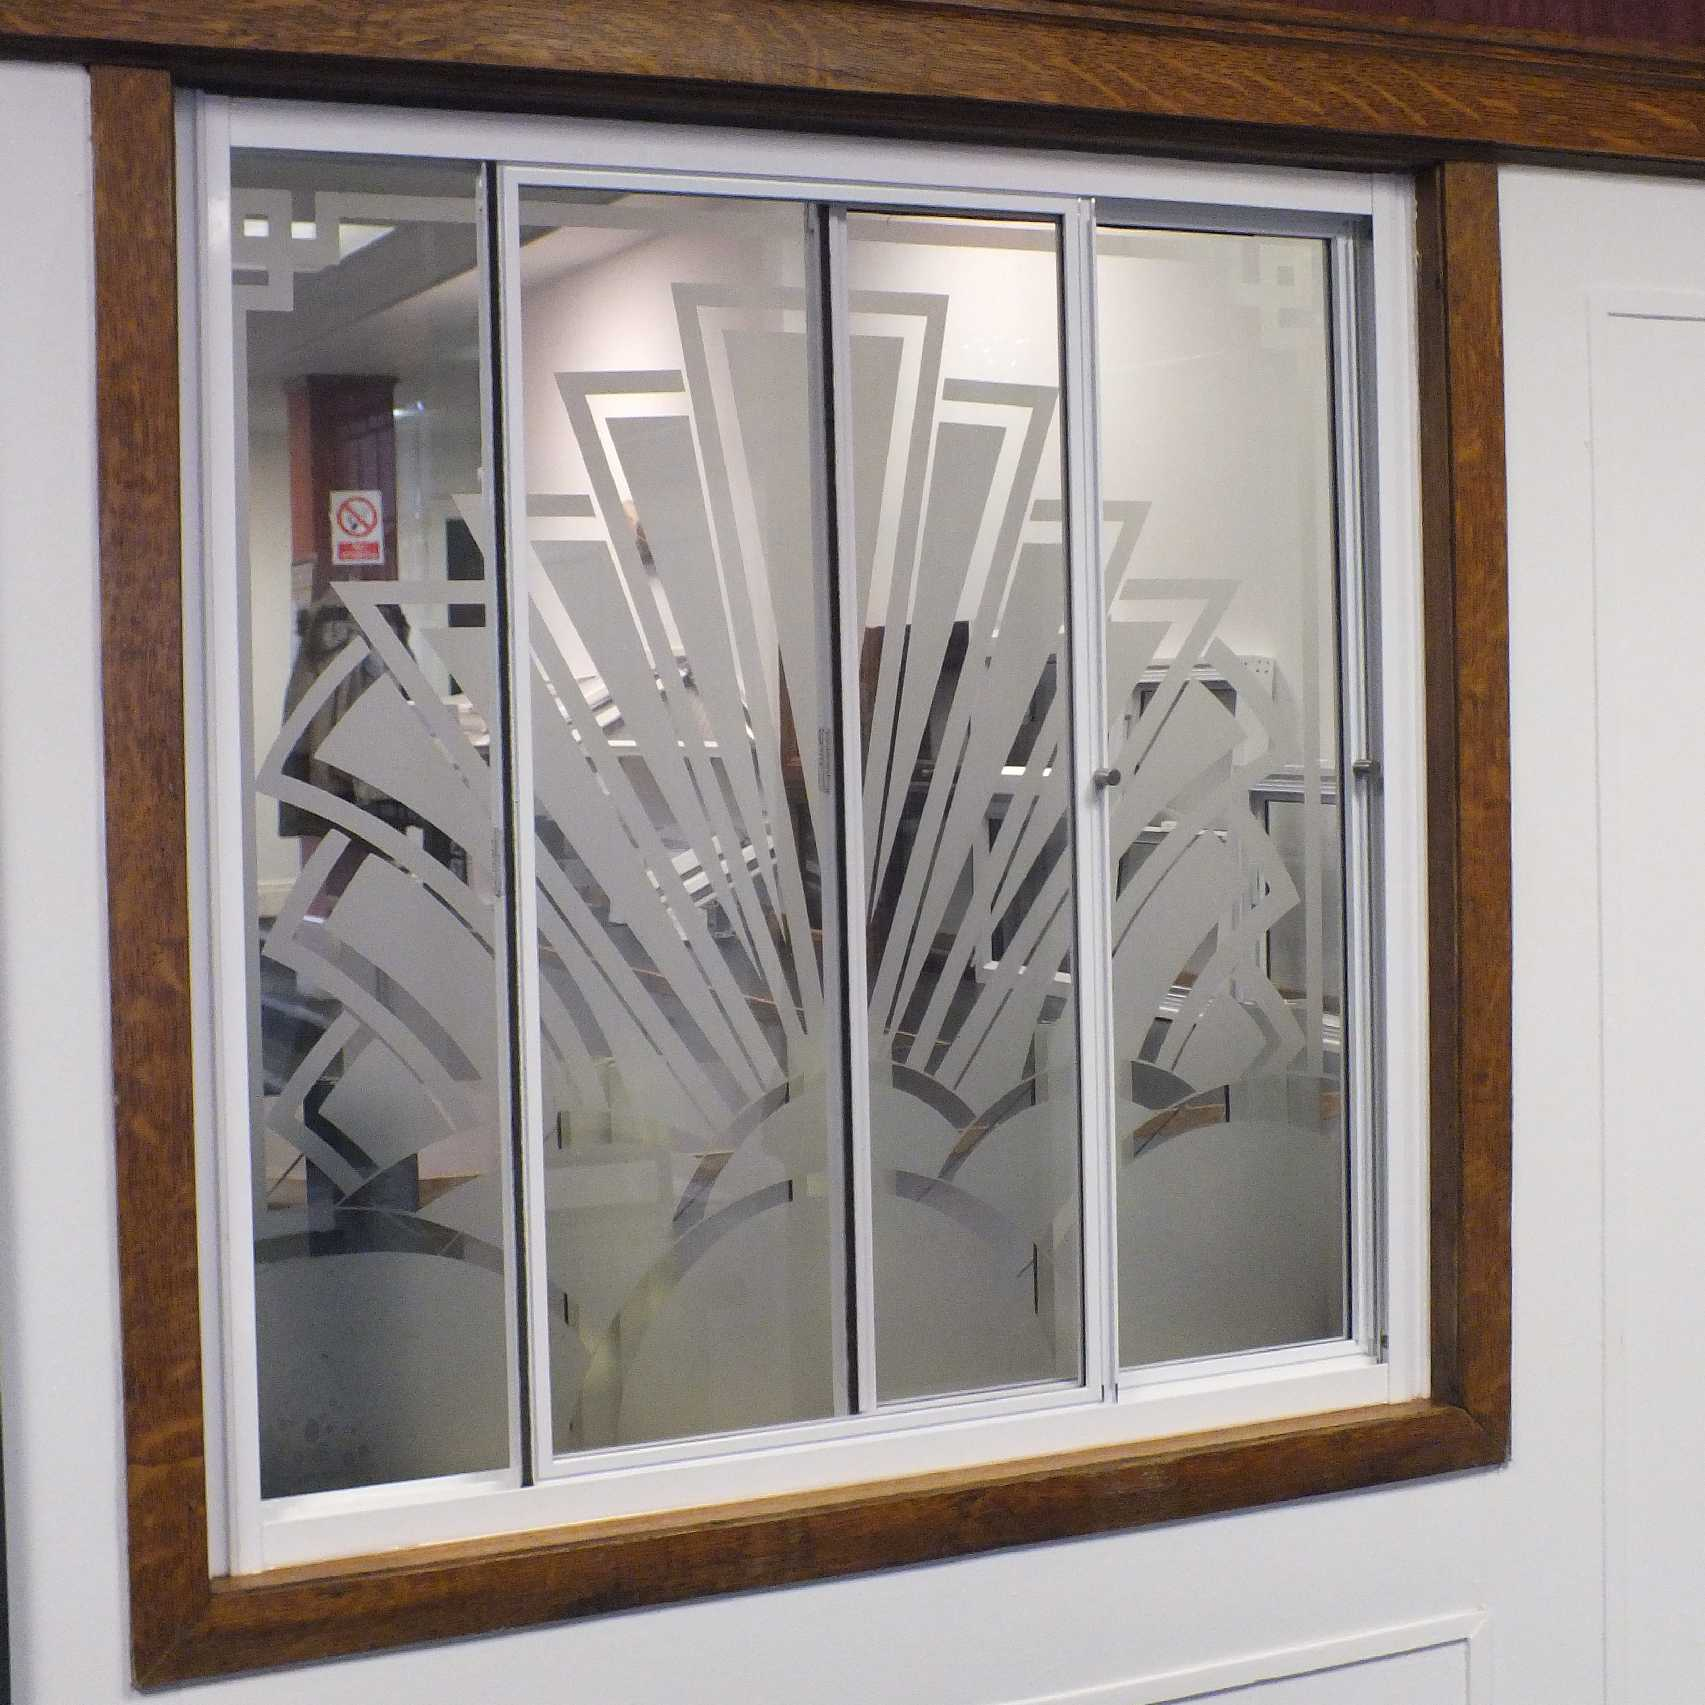 Opening secondary glazing system